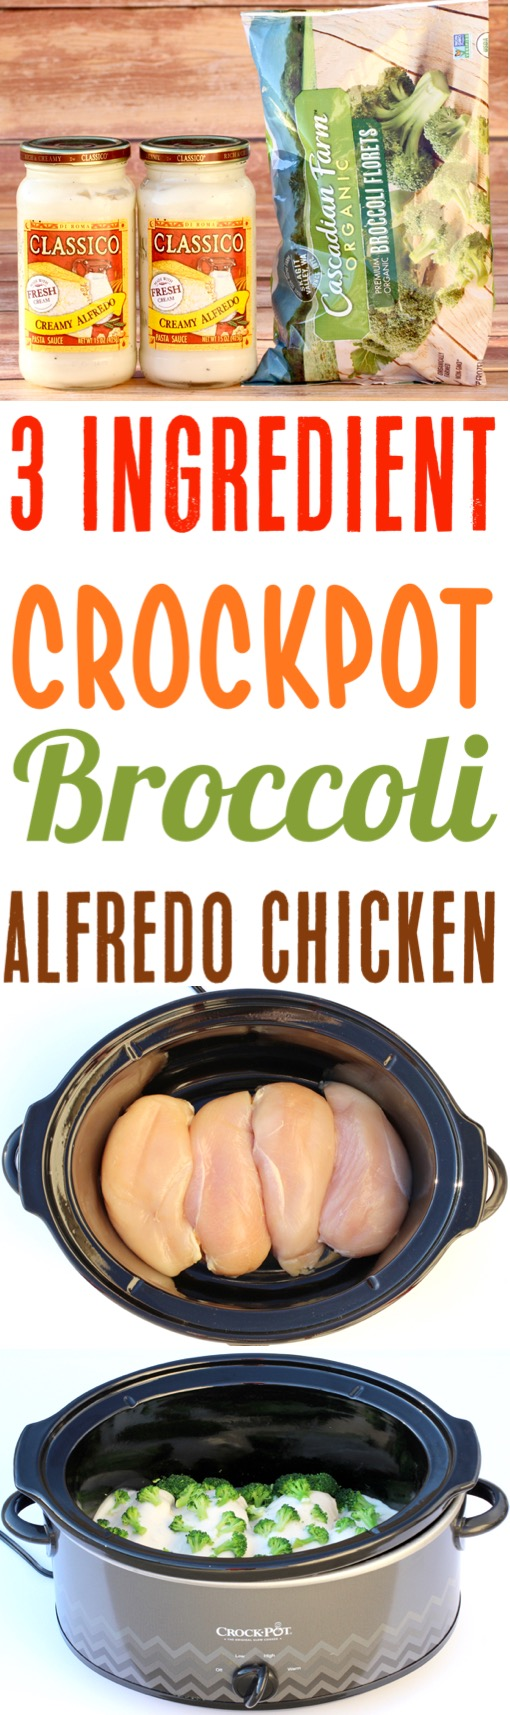 Crockpot Alfredo Chicken with Broccoli Recipe - Easy Slow Cooker Dinner Recipe